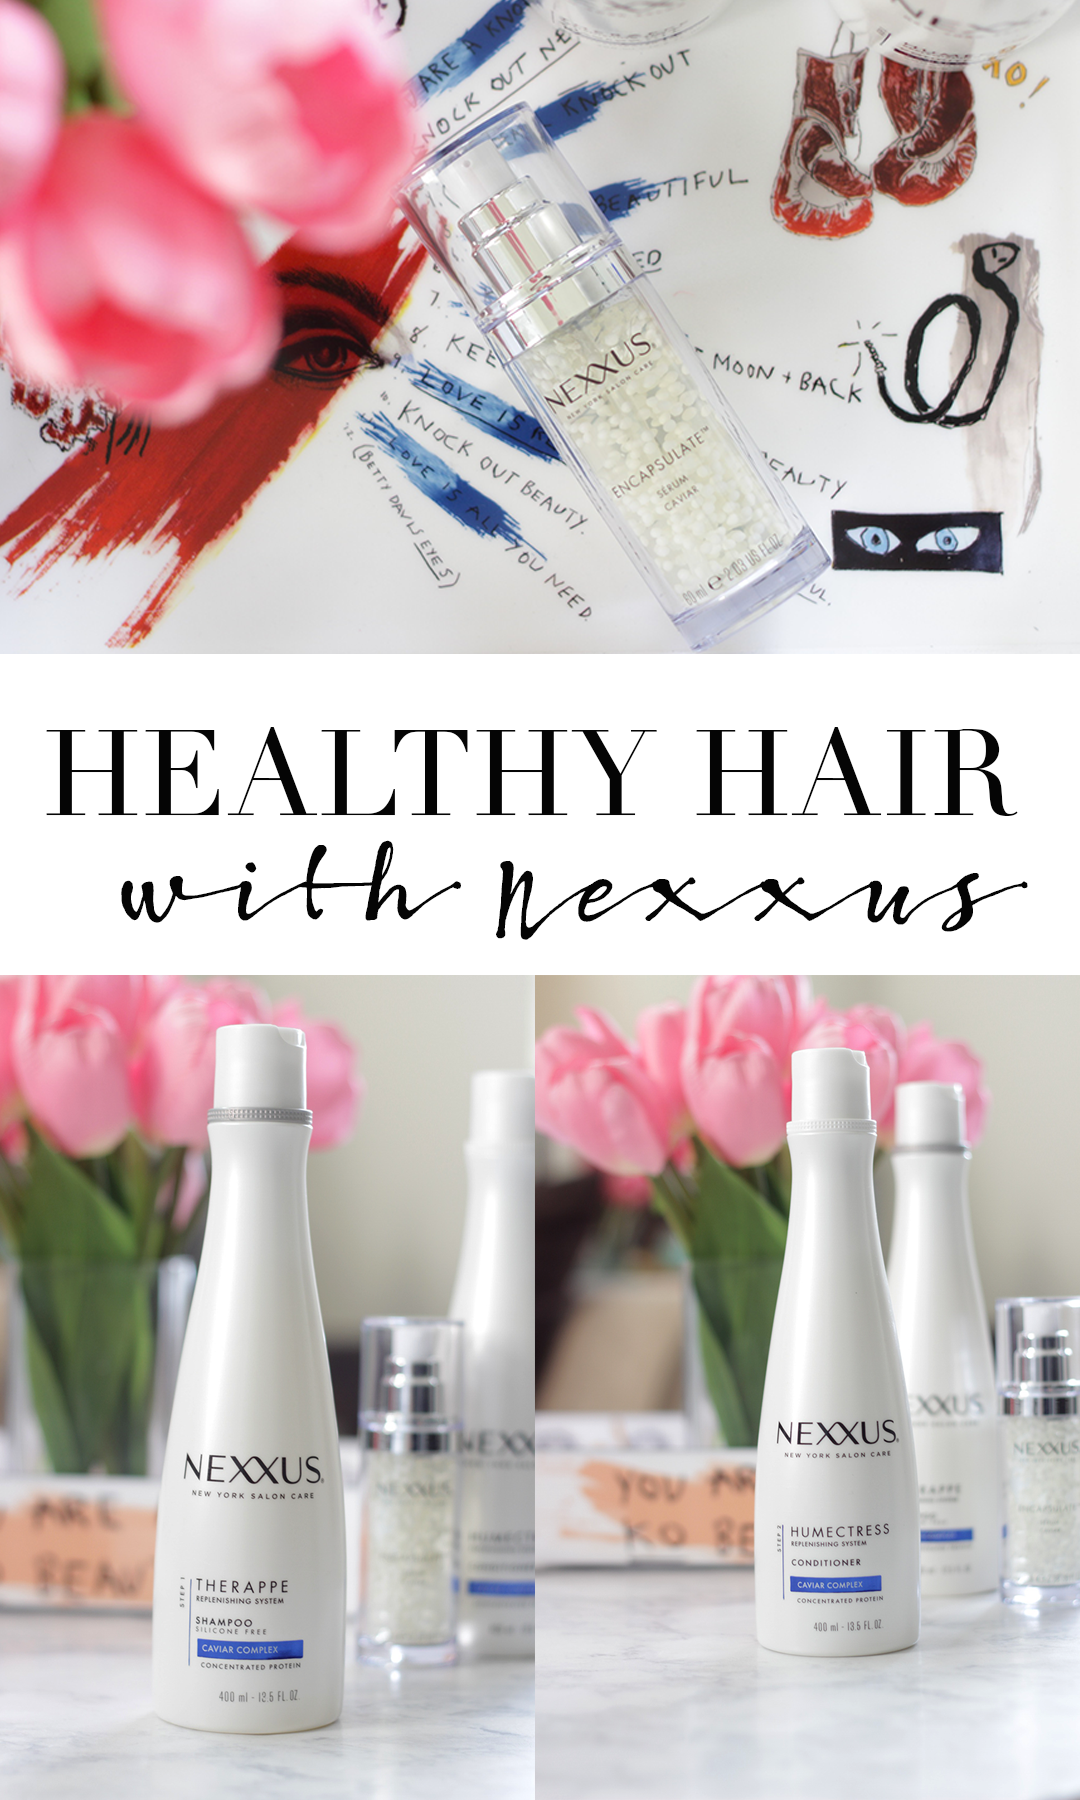 Healthy hair starts with great products. Find out why the Nexxus Replenishing System is a dry hair MUST HAVE. Keep reading to see how Jamie is loving the Nexxus Humectress and Therappe System- Nexxus Healthy Hair- Nexxus Haircare